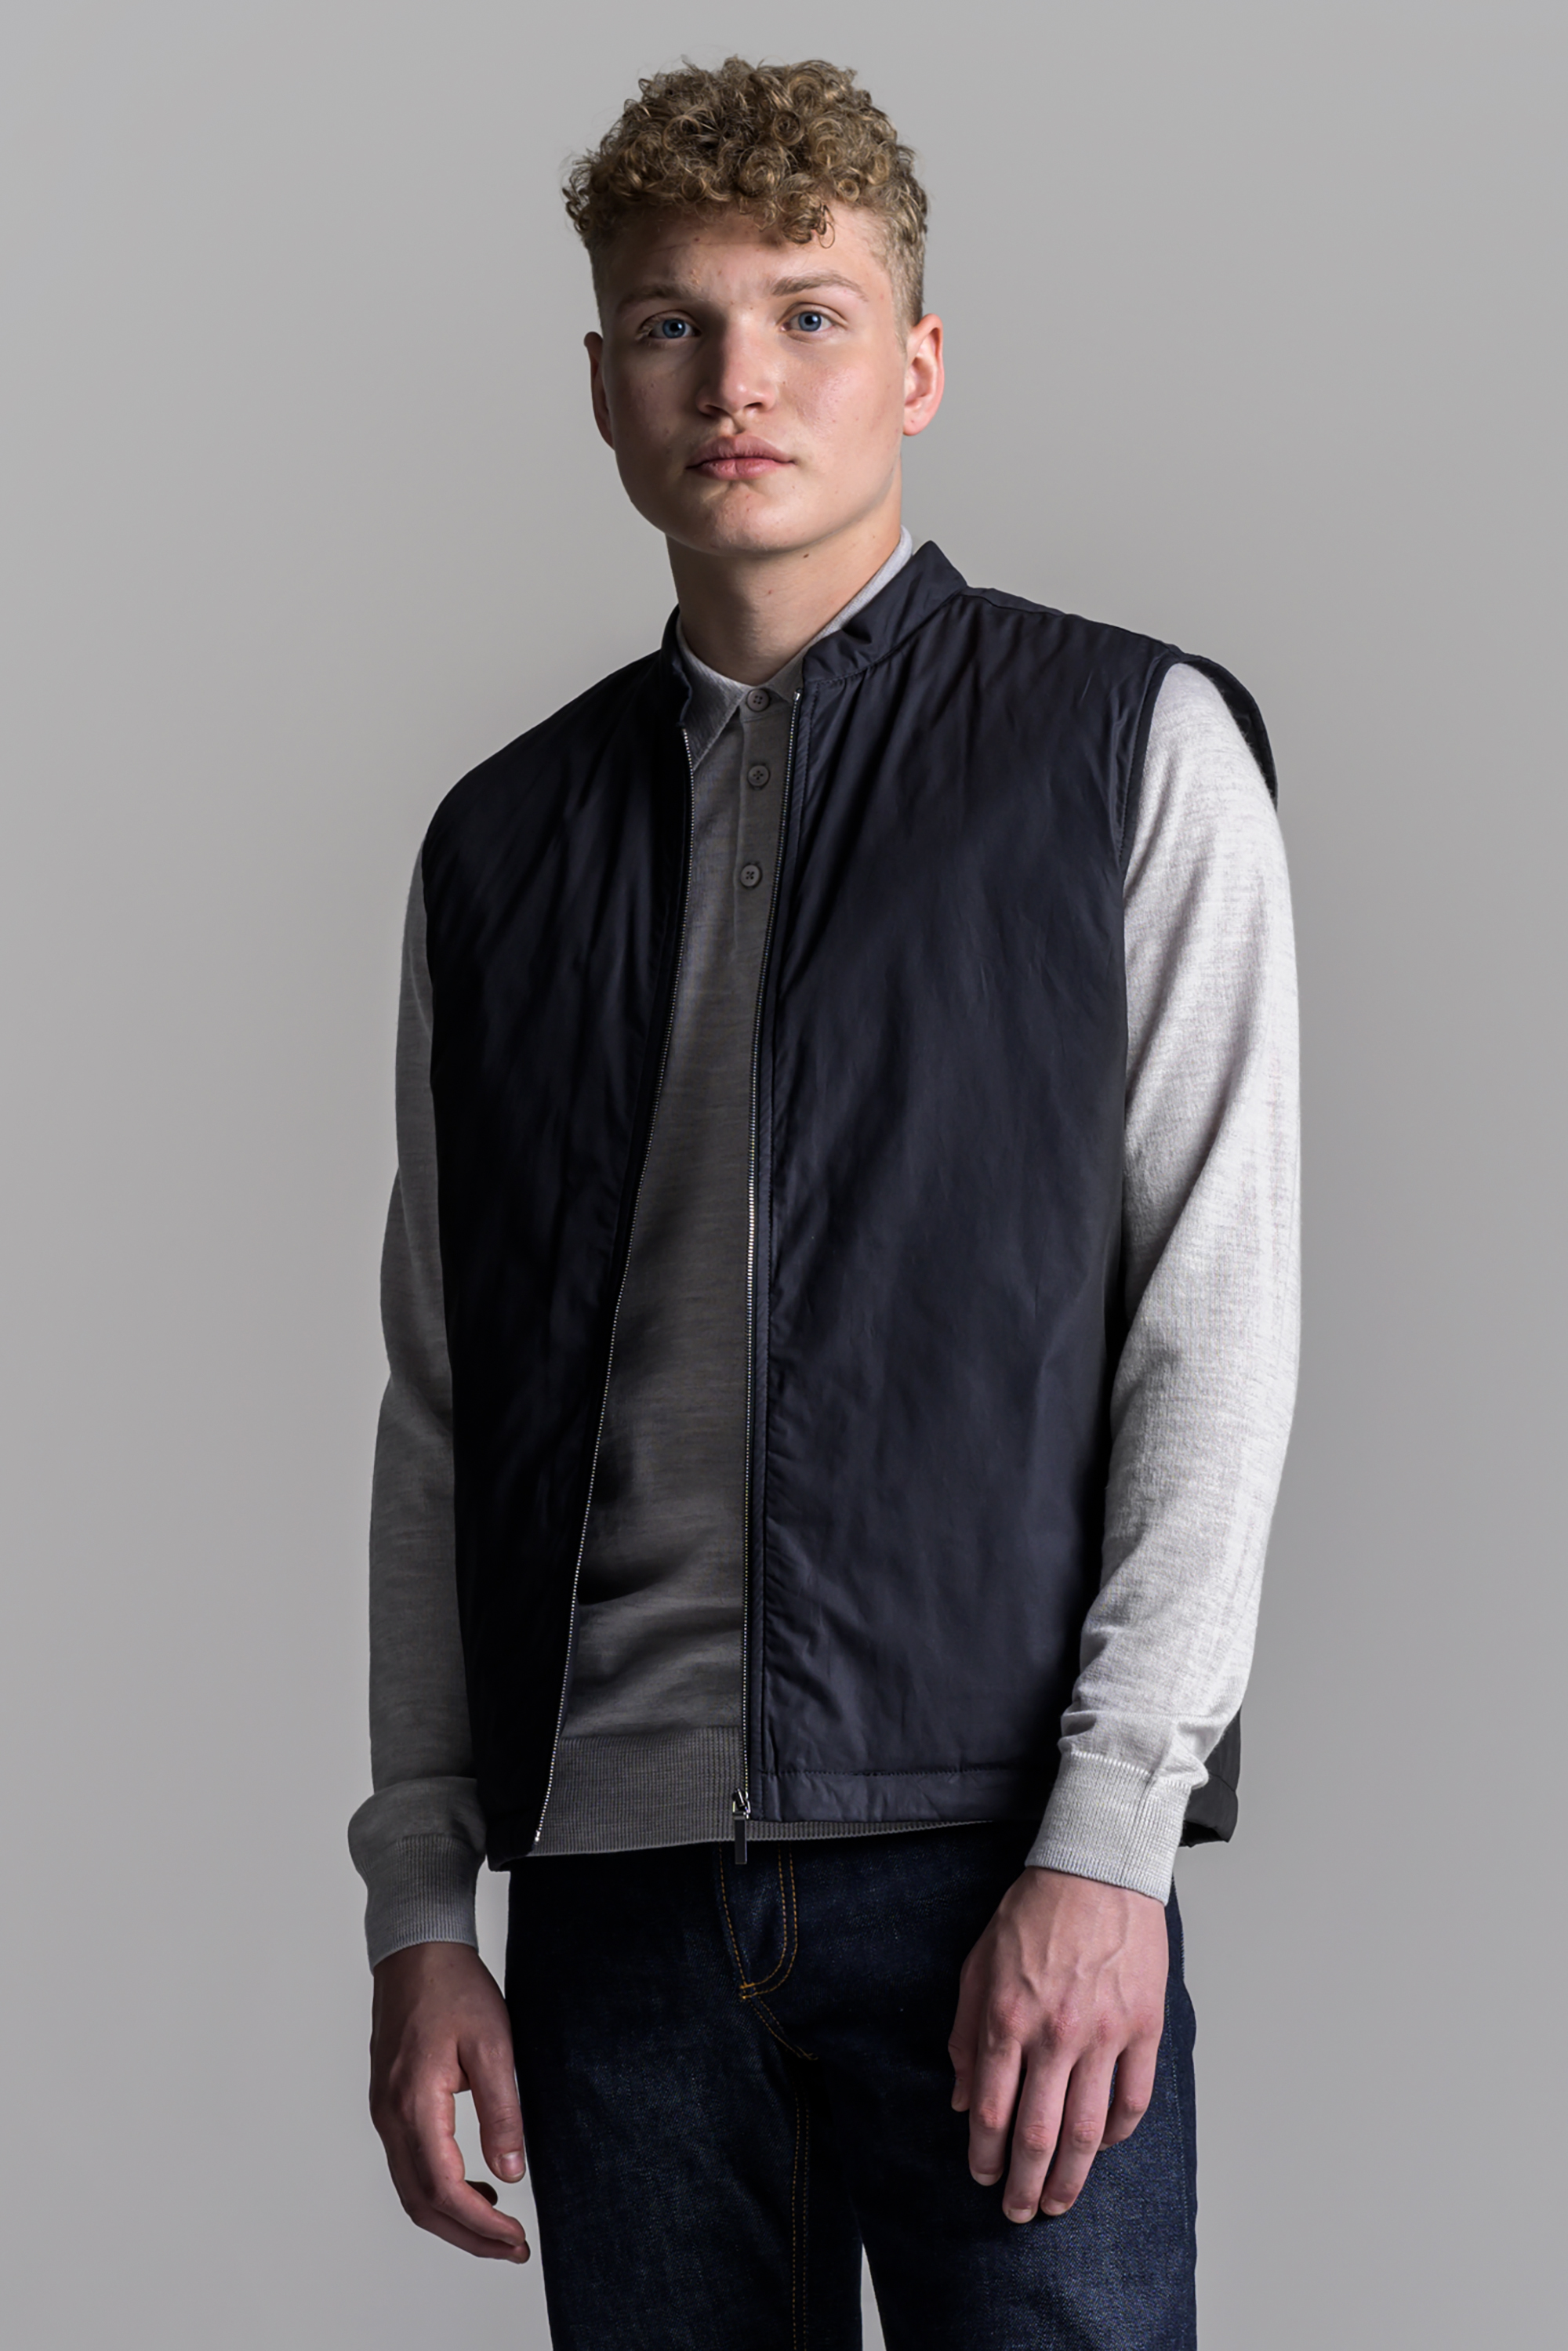 Nike Tech Pack Transform Jacket in Grey | LN CC